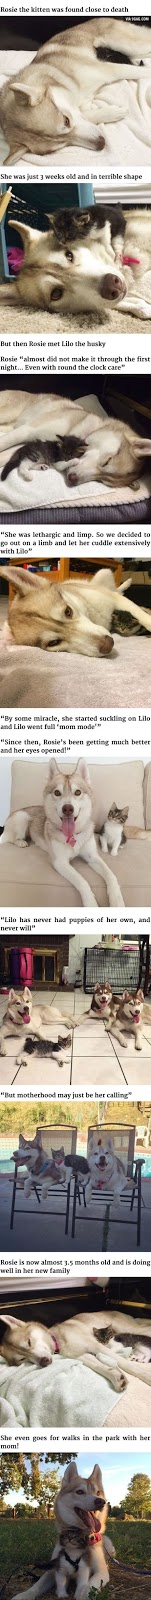 Lilo the Husky adopts Rosie the Kitten as her own and nurses her back to a healthy life. #adorable #animals #husky #kitten #emotions #feelings #story #true